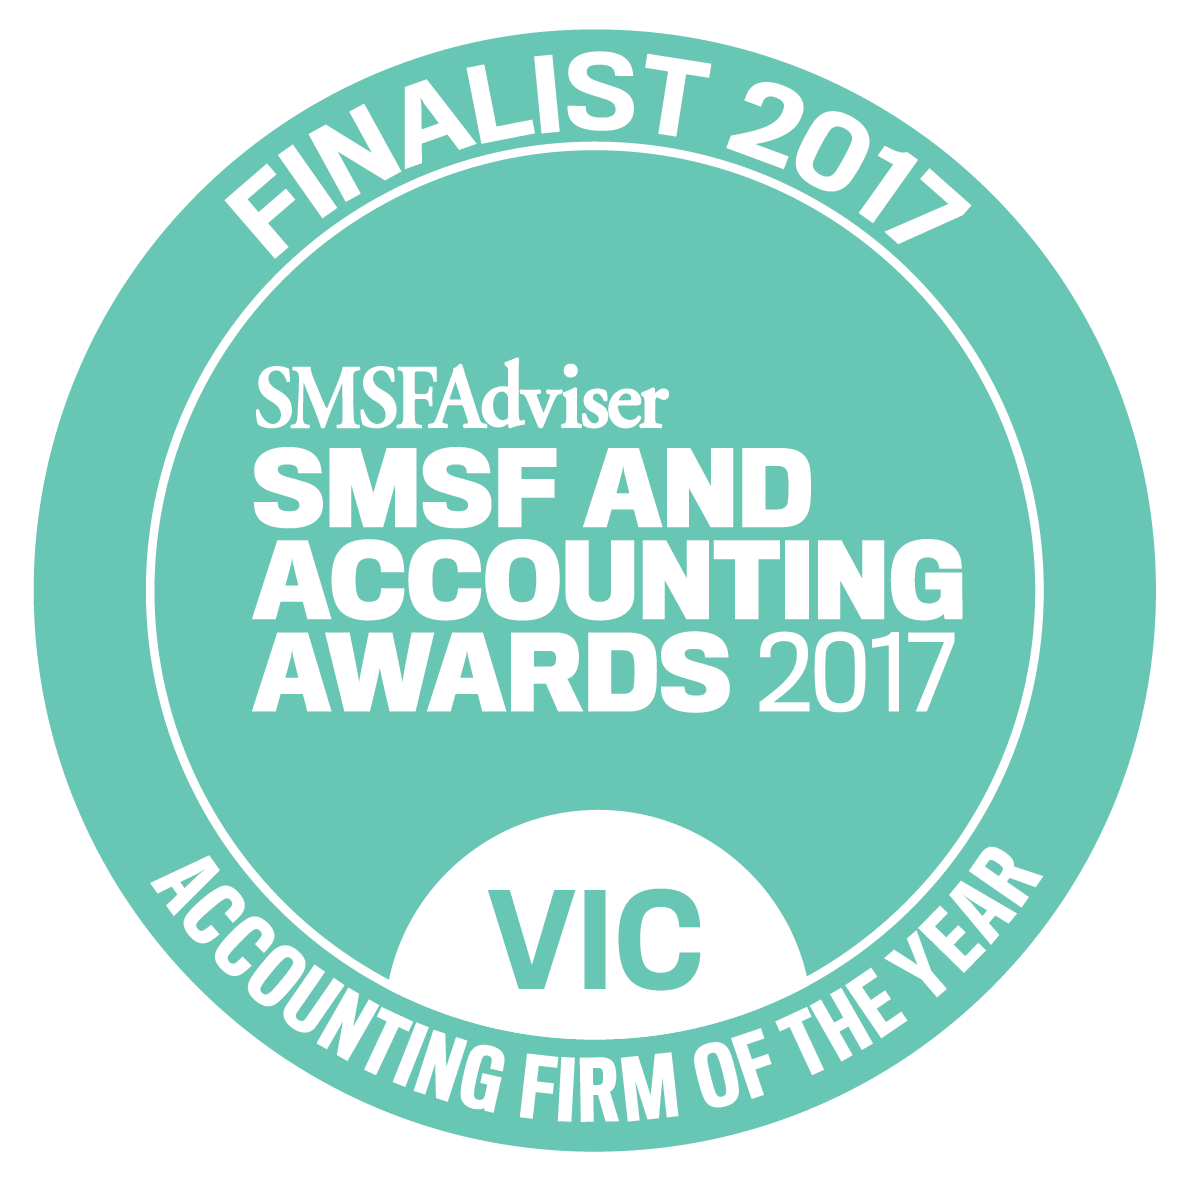 SMSF And Accounting Awards 2017 Accounting firm of the year